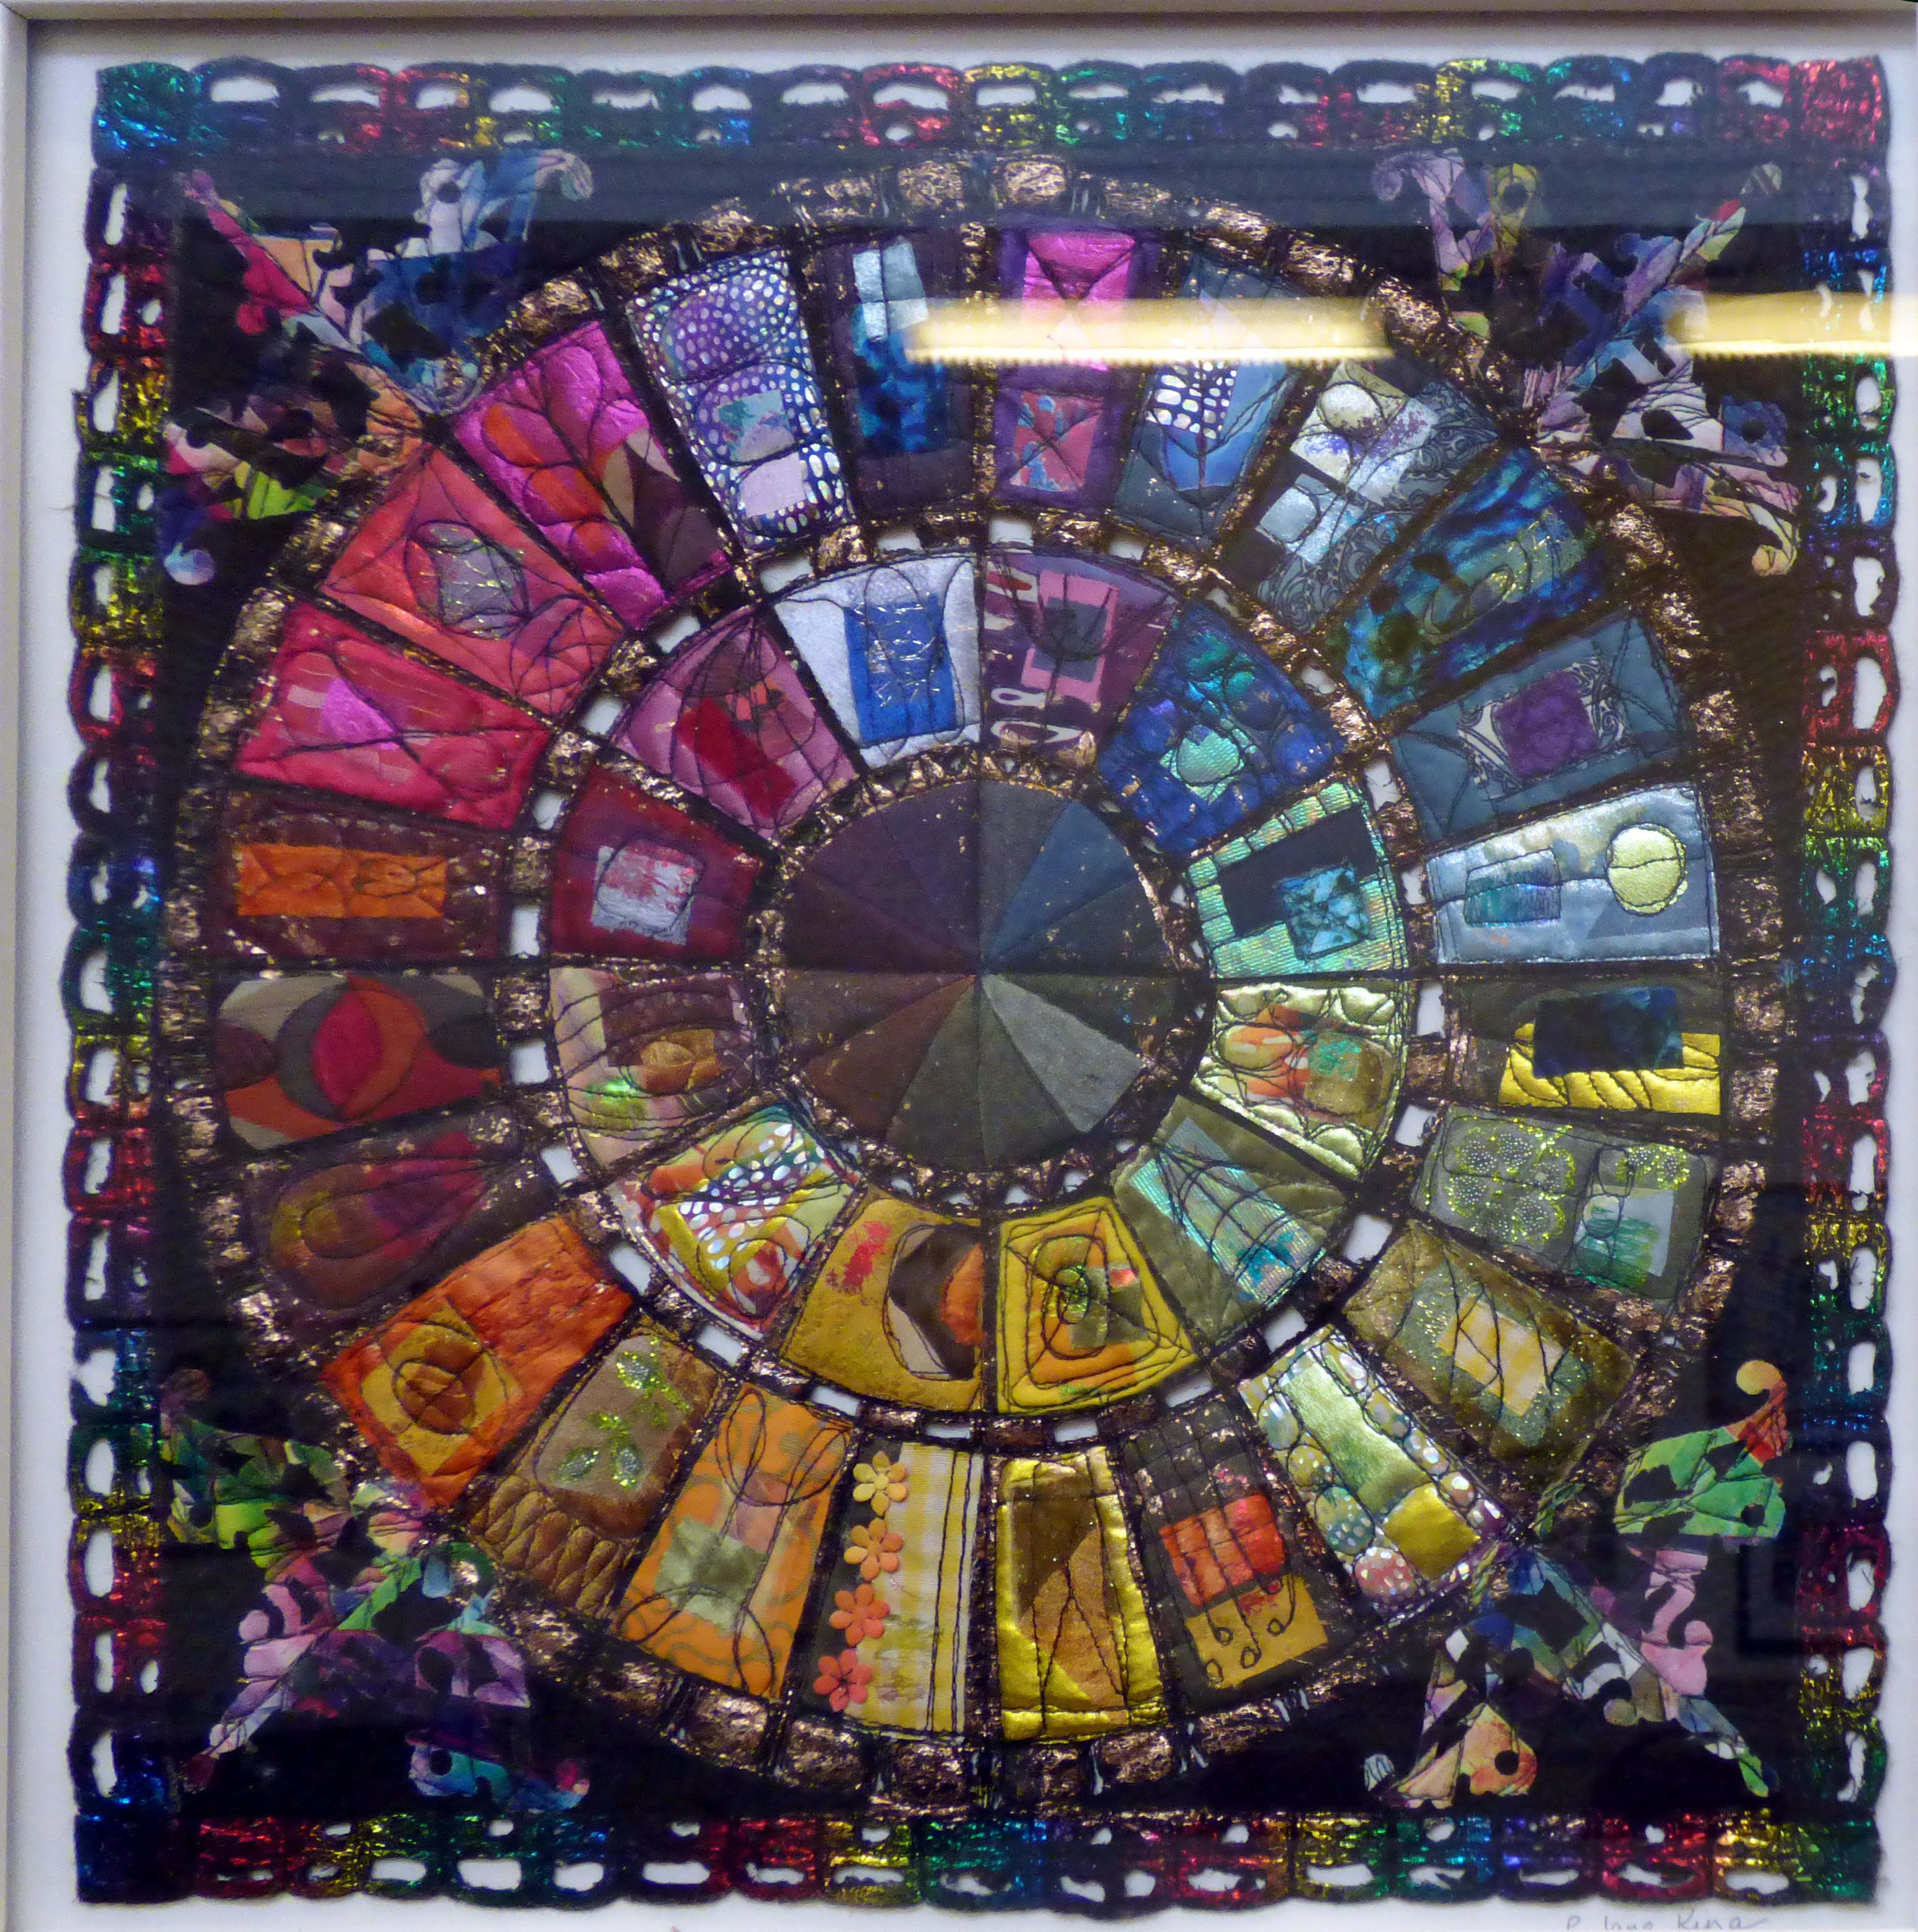 COLOUR WHEEL ROSE WINDOW by Patricia Jane King, mixed fabrics, foils and threads constructed with machine stitching and soldering iron